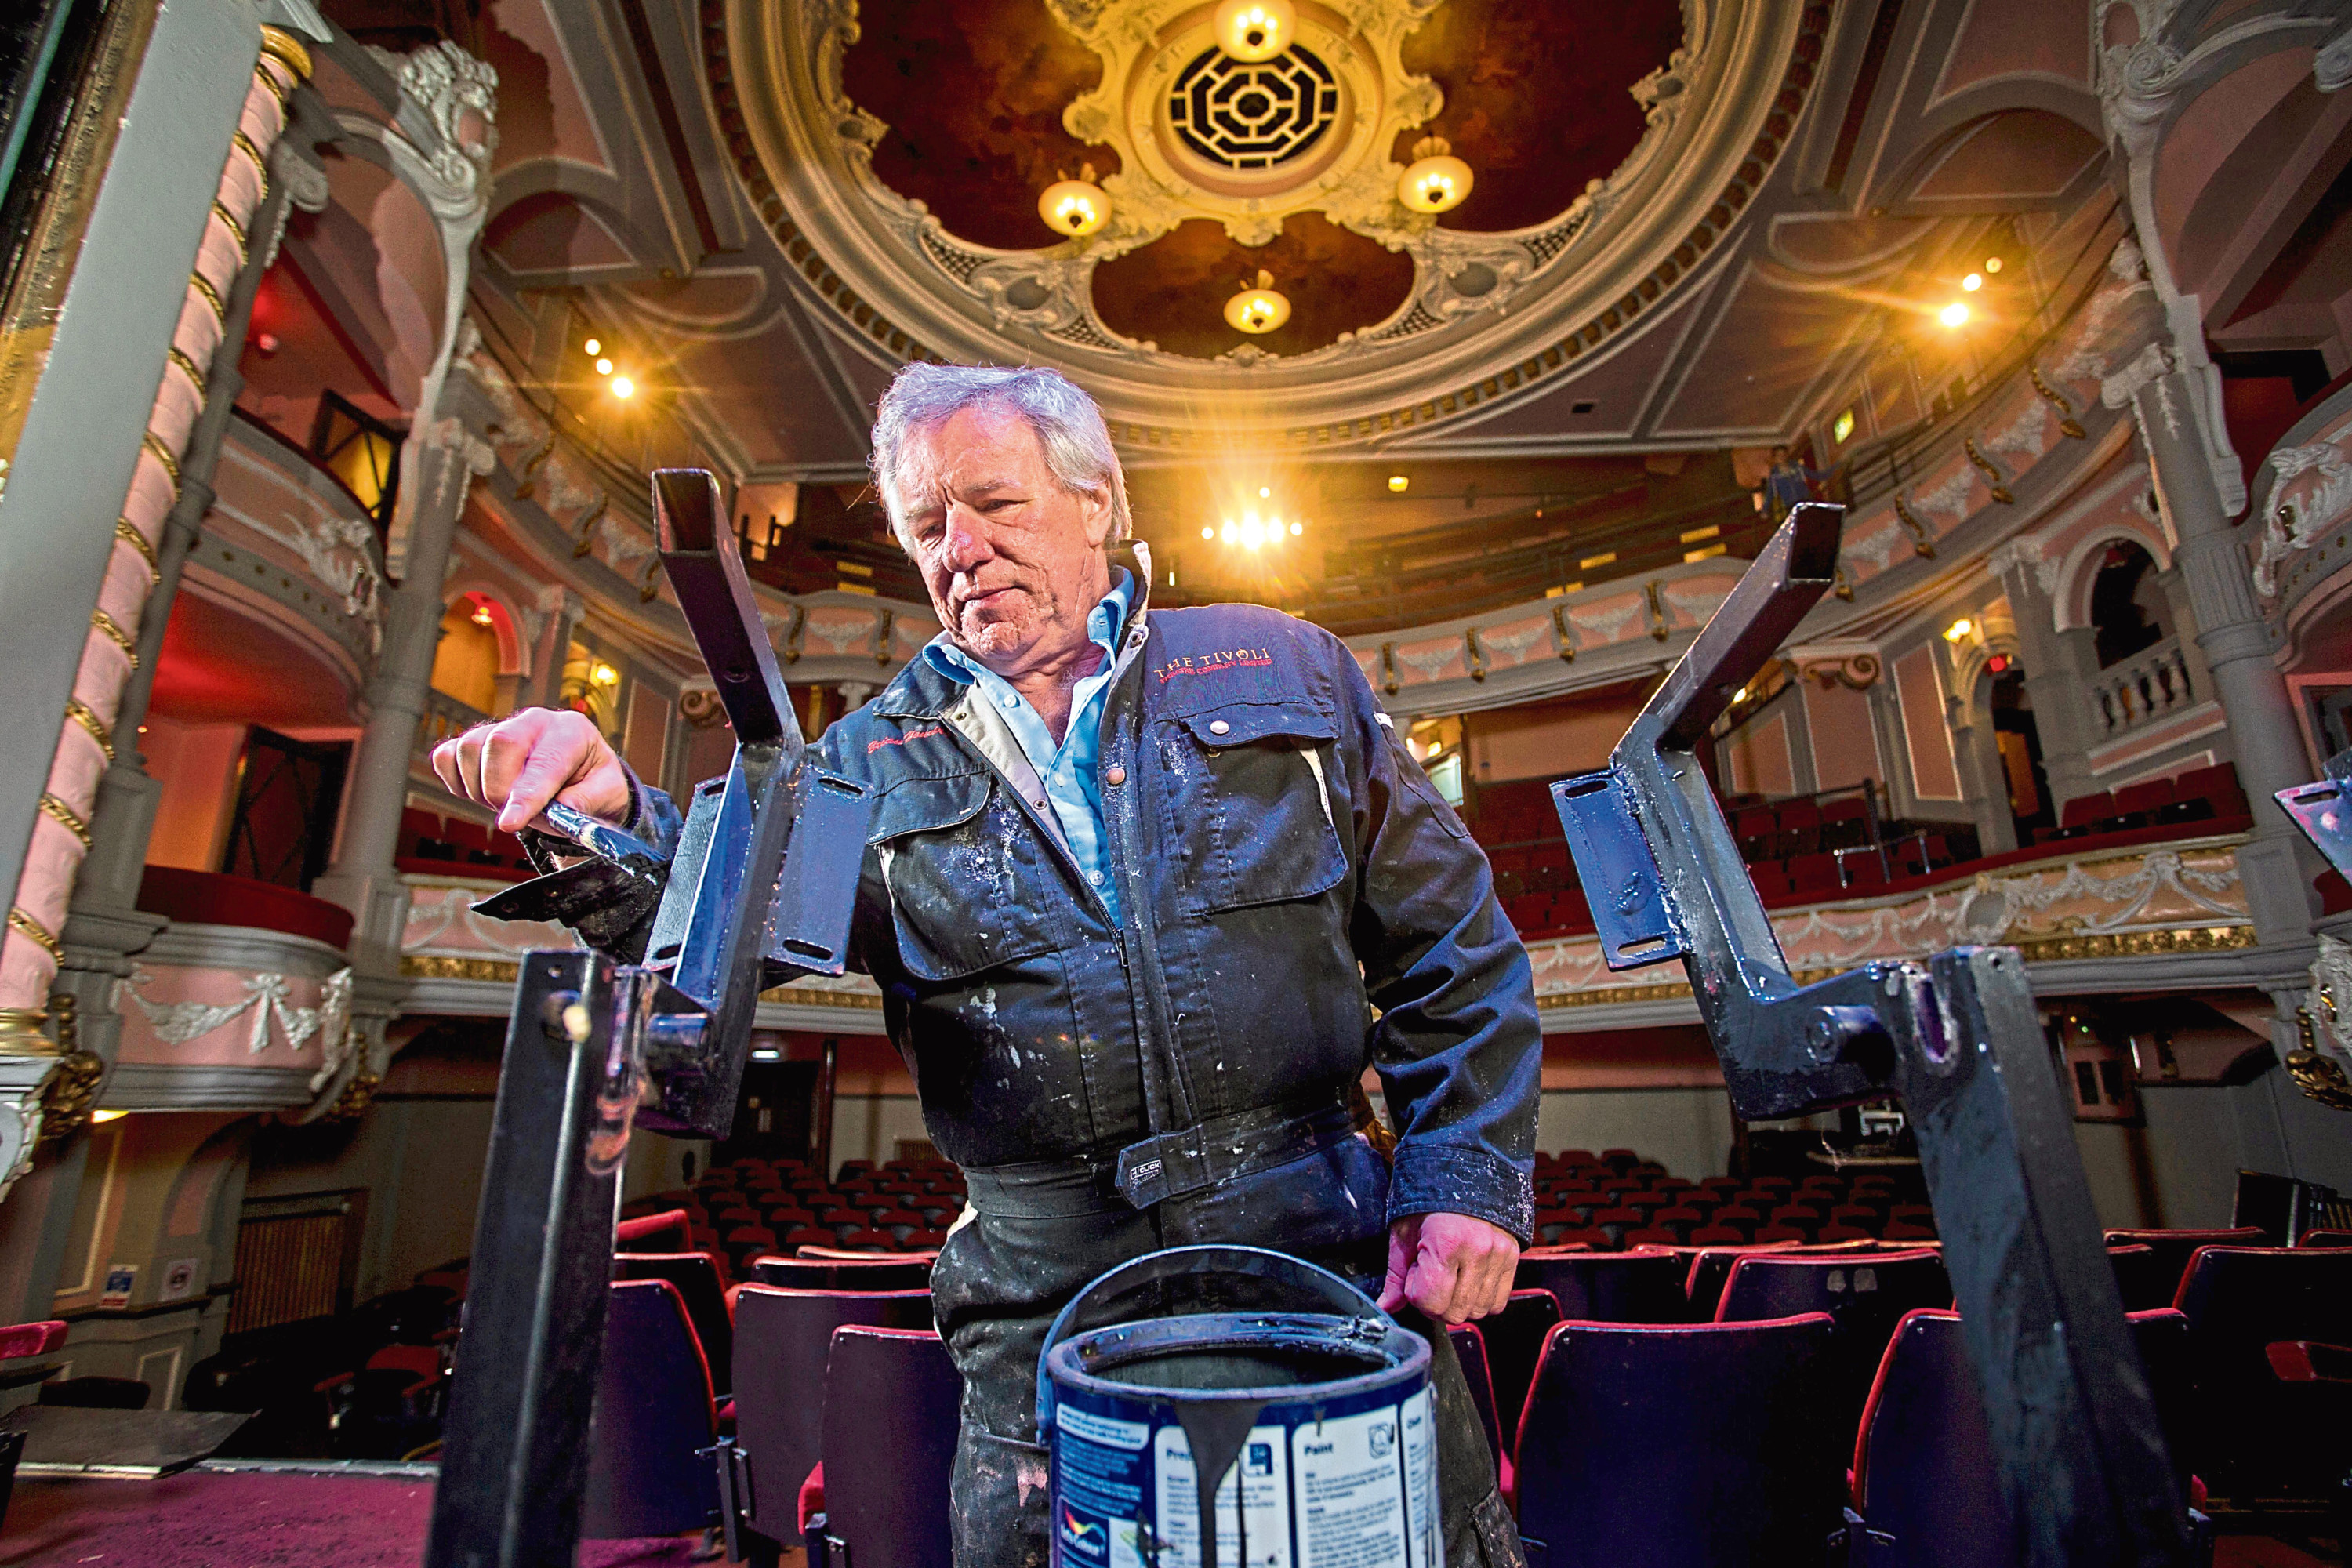 Martin Gilbert helped redecorate Aberdeen's Tivoli Theatre as part of a volunteering project.